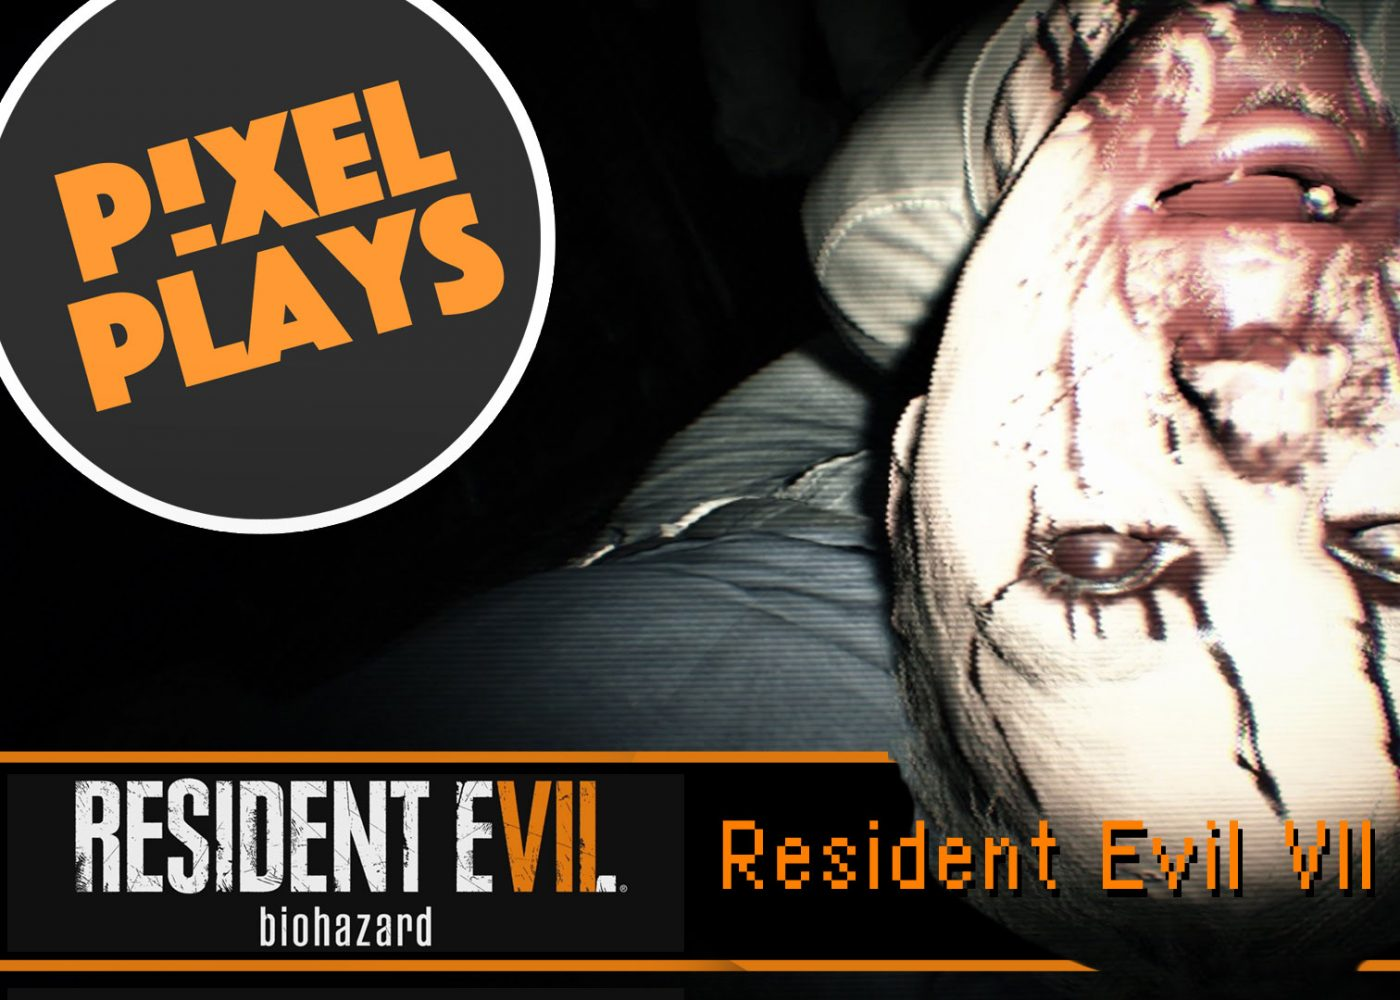 pixel plays, resident evil 7, tape 1, desolation, biohazard, the action pixel, capcom, resident evil, re, promo, tape1 , the action pixel, entertainment on tap, trailer, playstation , xbox, vr, ps4, playstation 4, pc